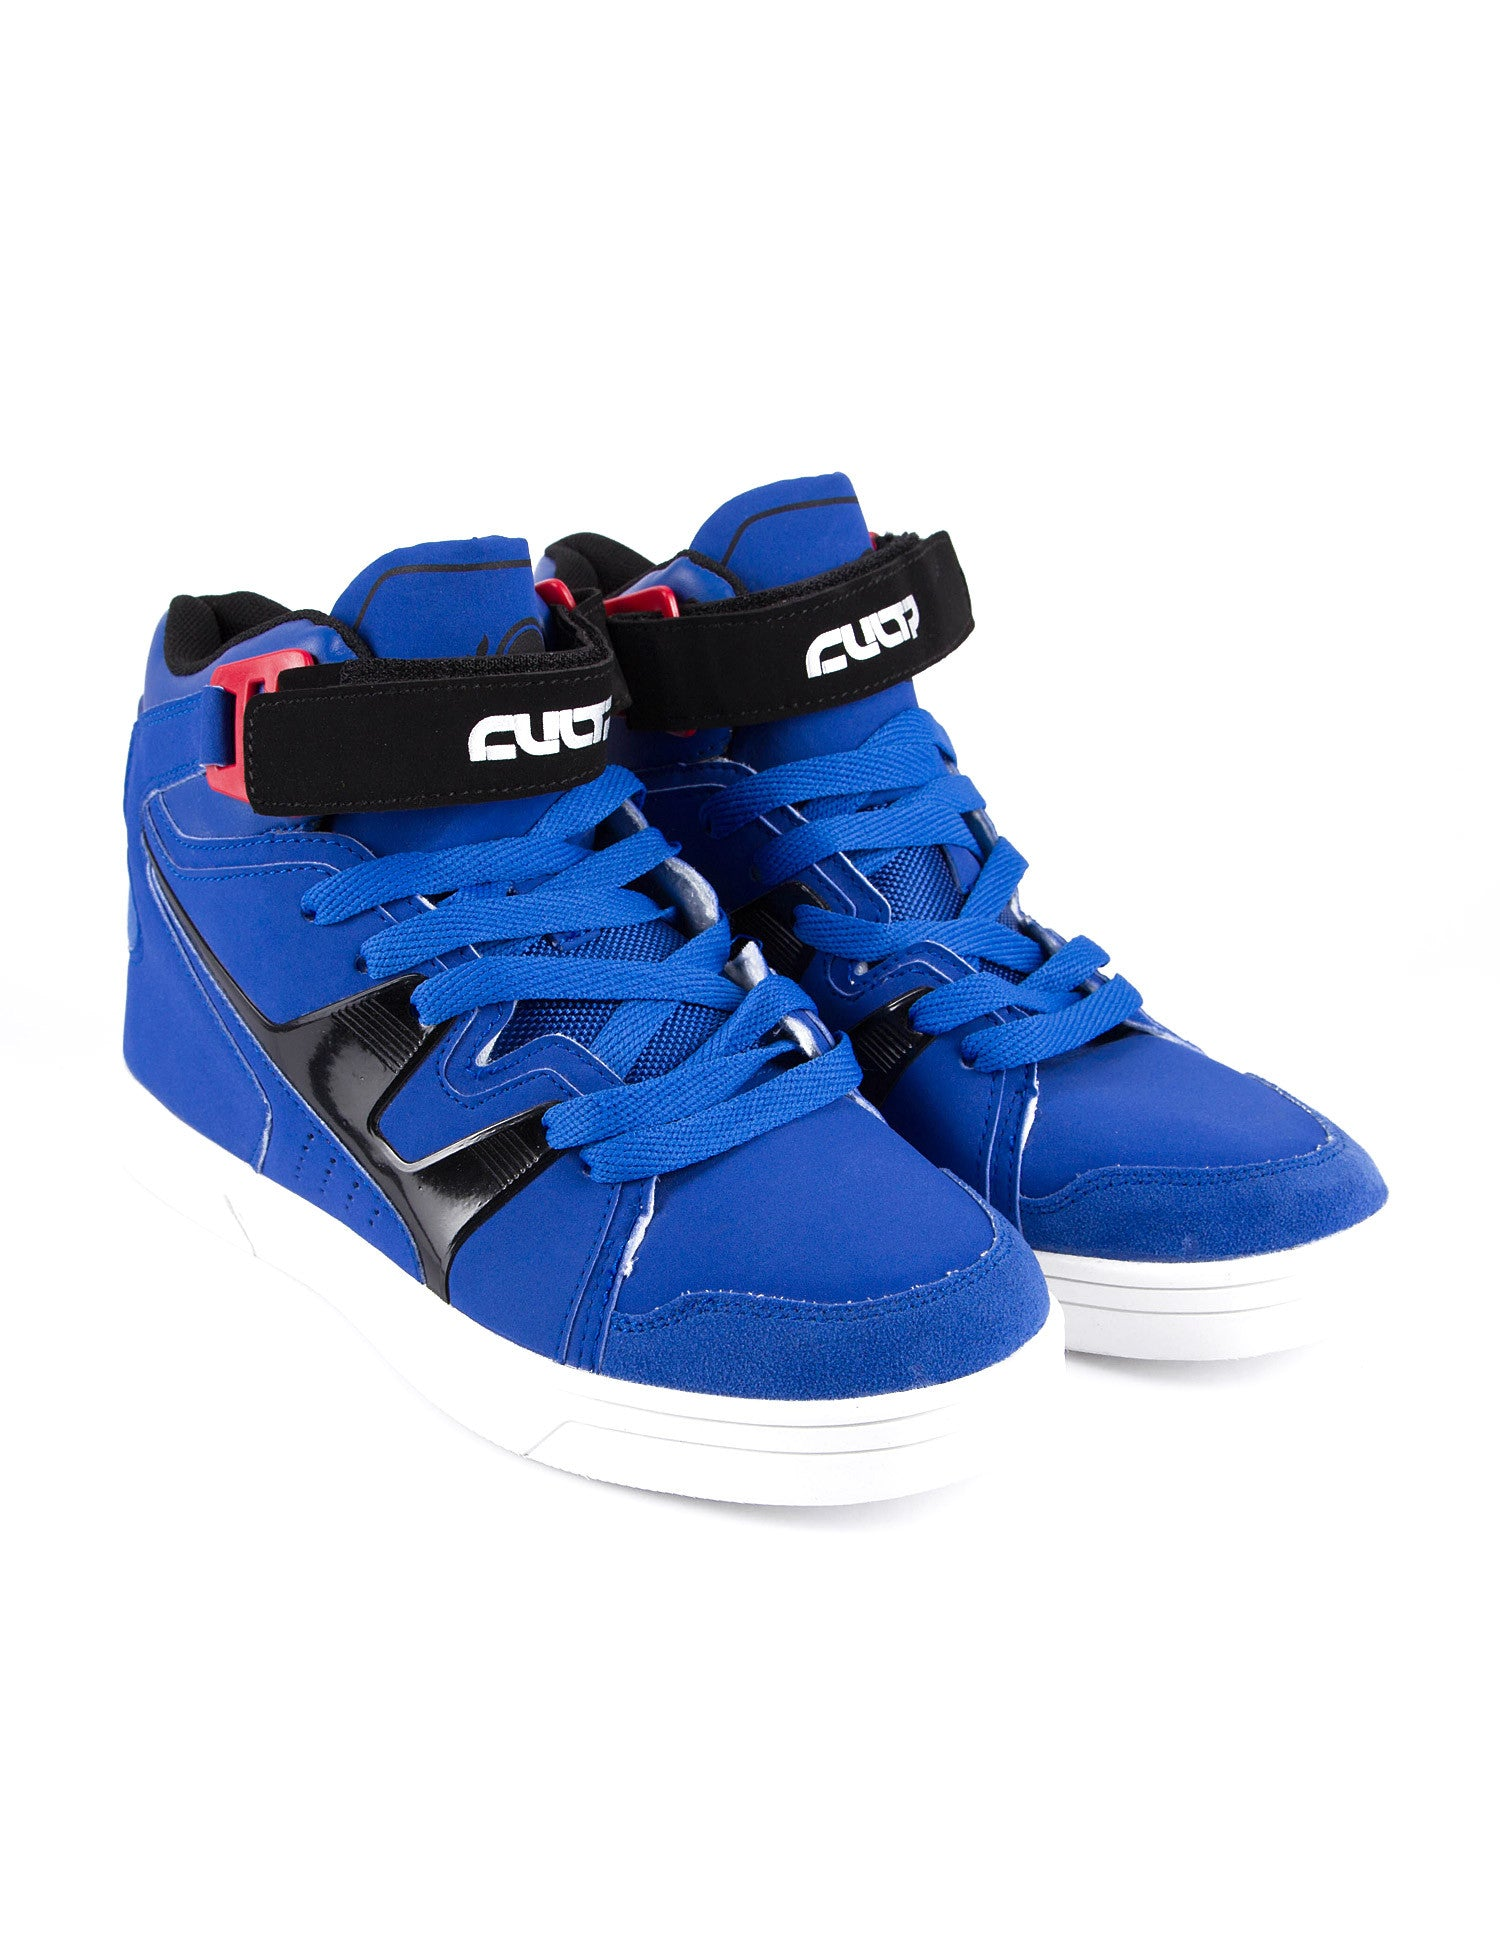 Image of 9-6360 Shoes  Blue